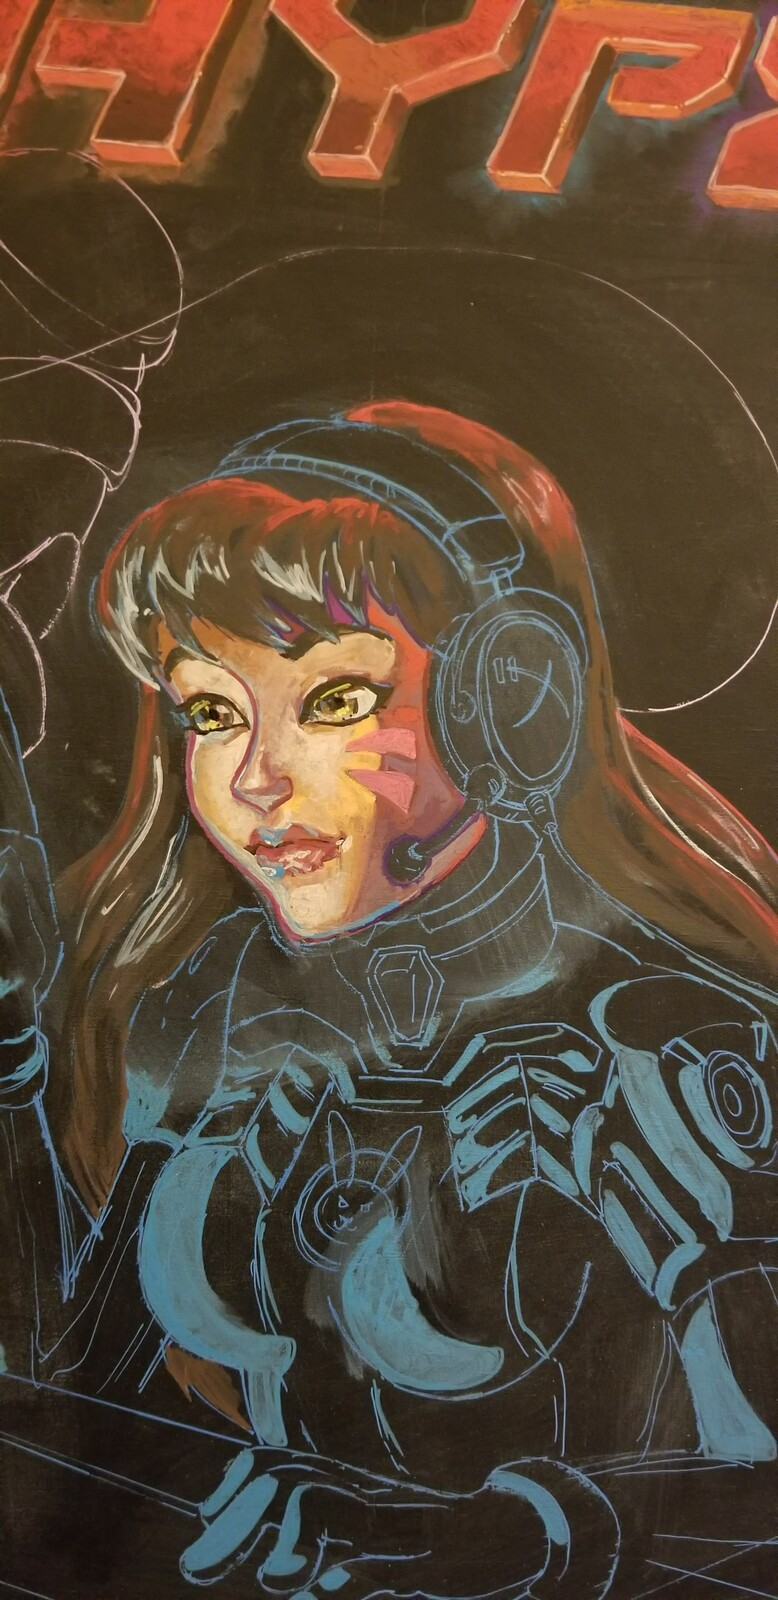 This was my practice D.Va, which I like so much more than my final D.Va, which I'm disappointed with. To be fair to I had more time to experiment and make corrections on my practice one. I had to resist making changes at the show and risk wasting time.